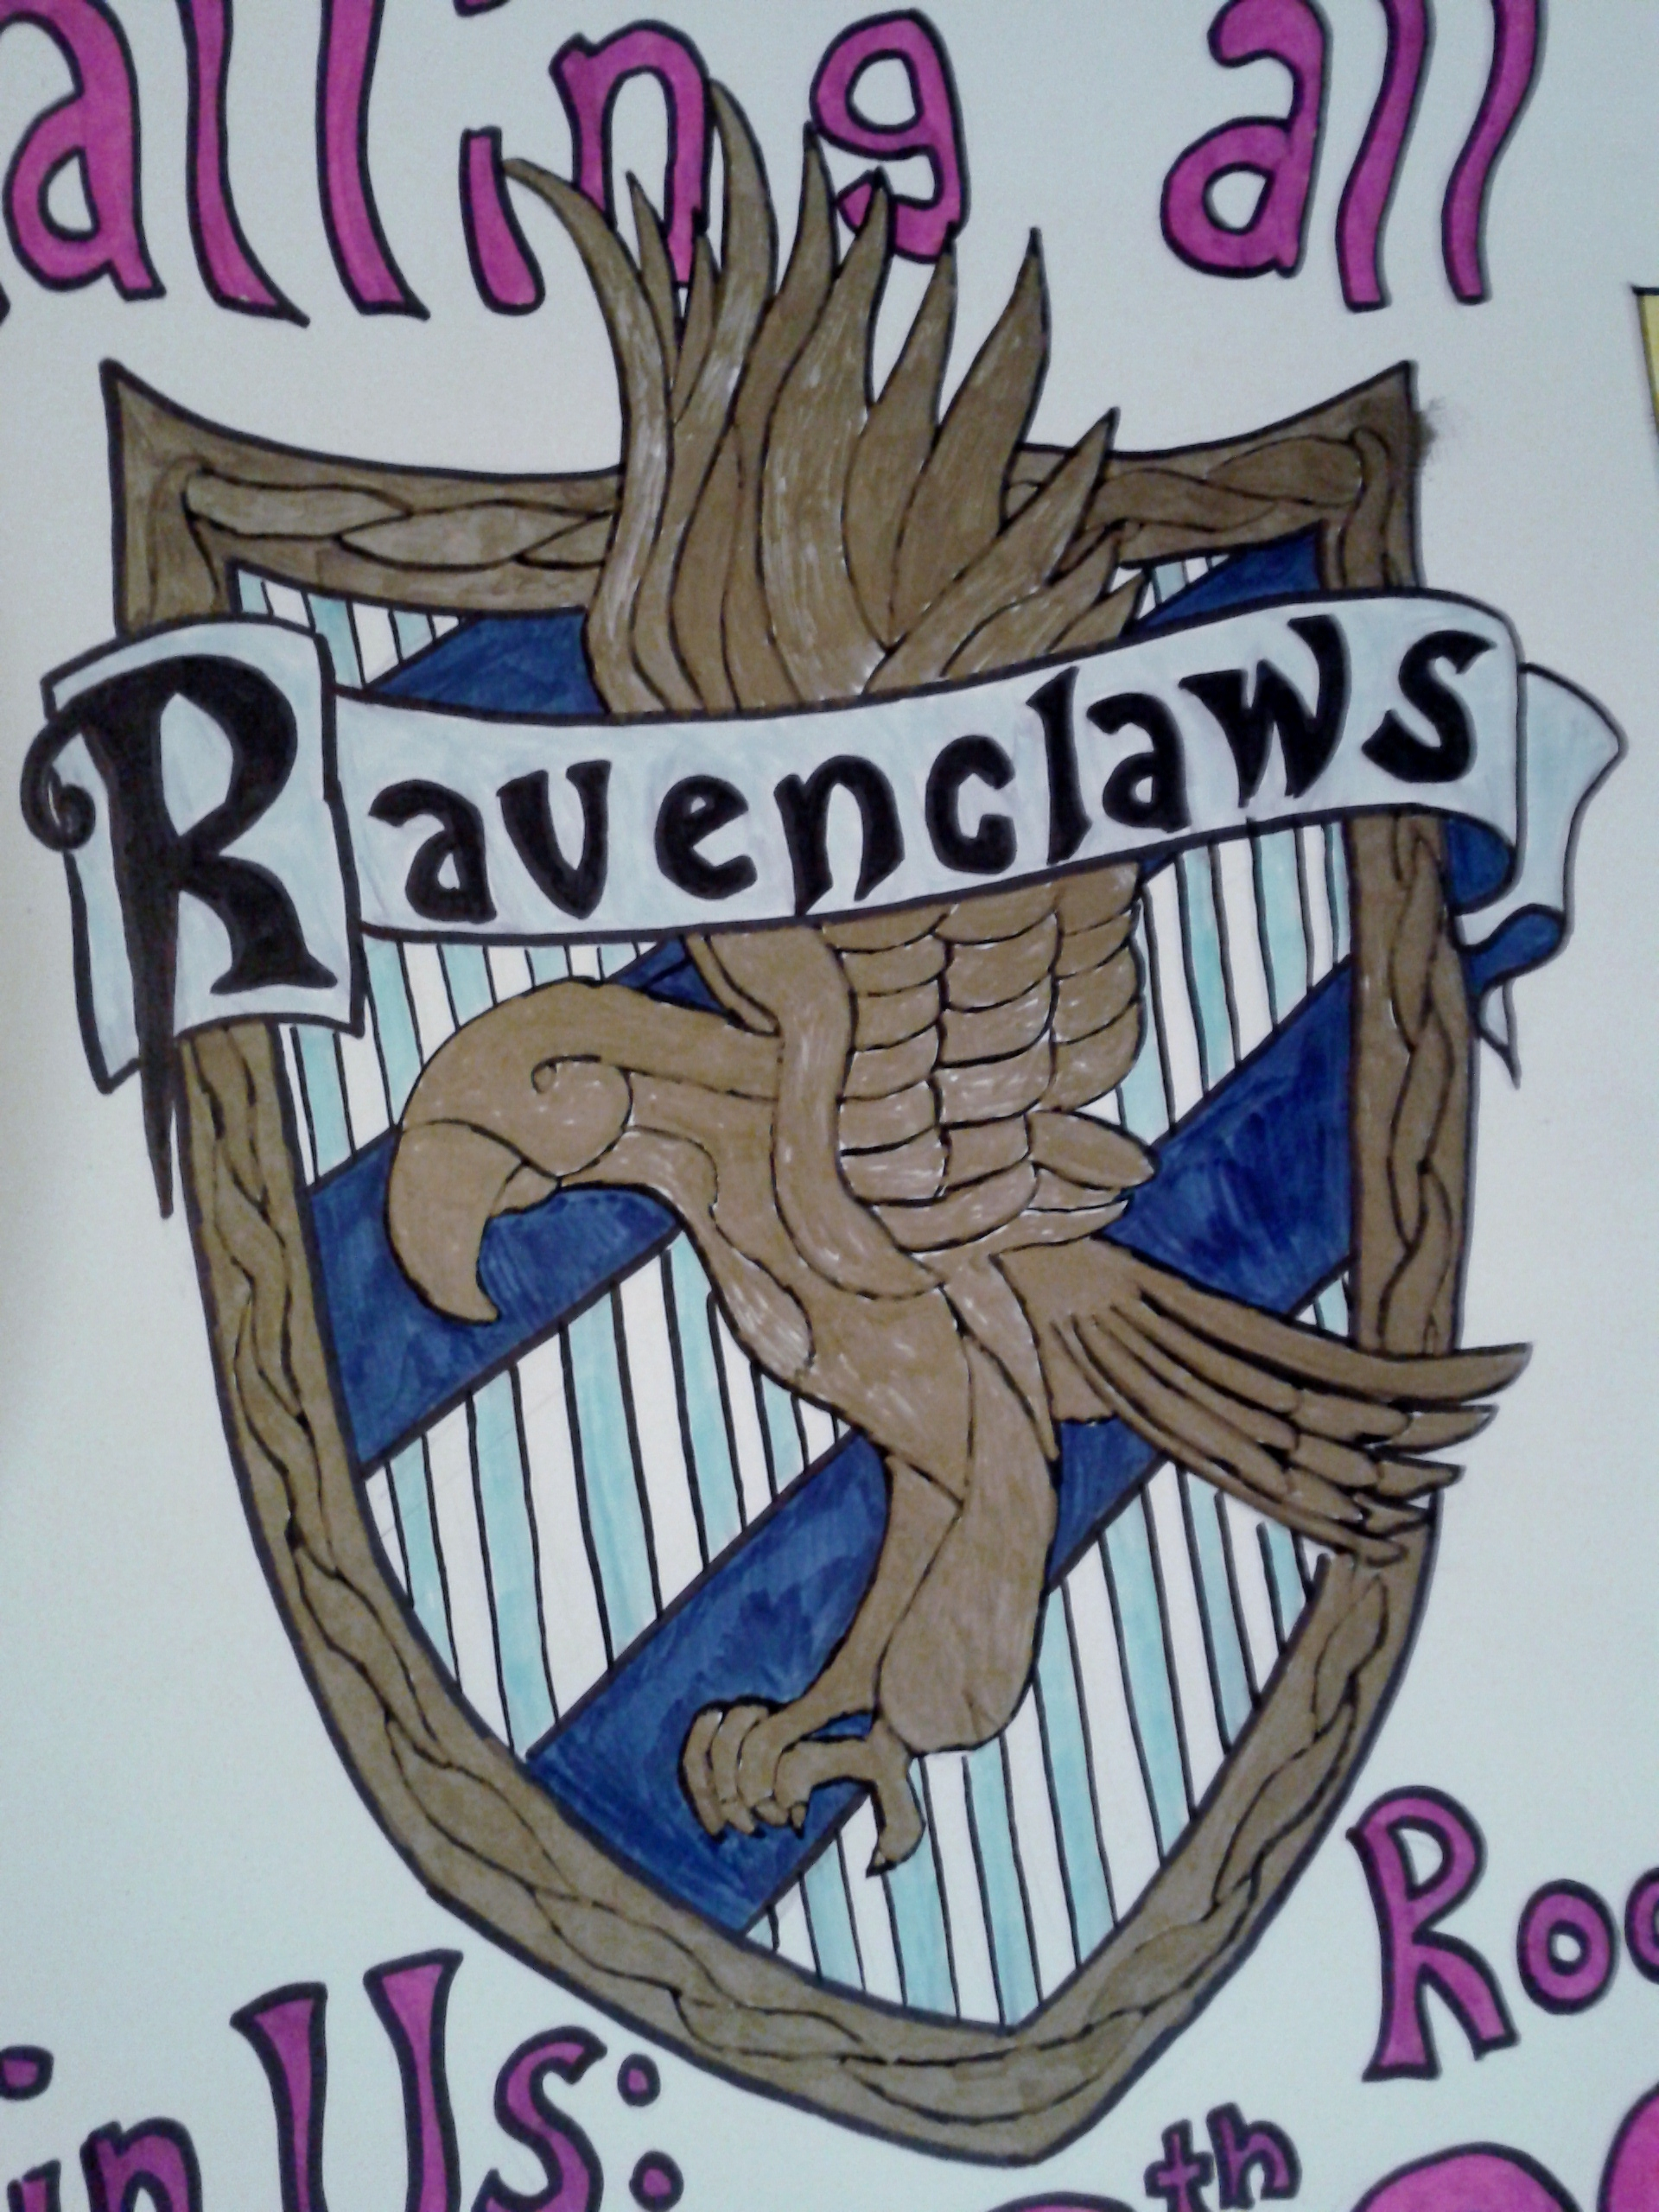 Ravenclaw House Crest by owlsomeartRavenclaw House Crest